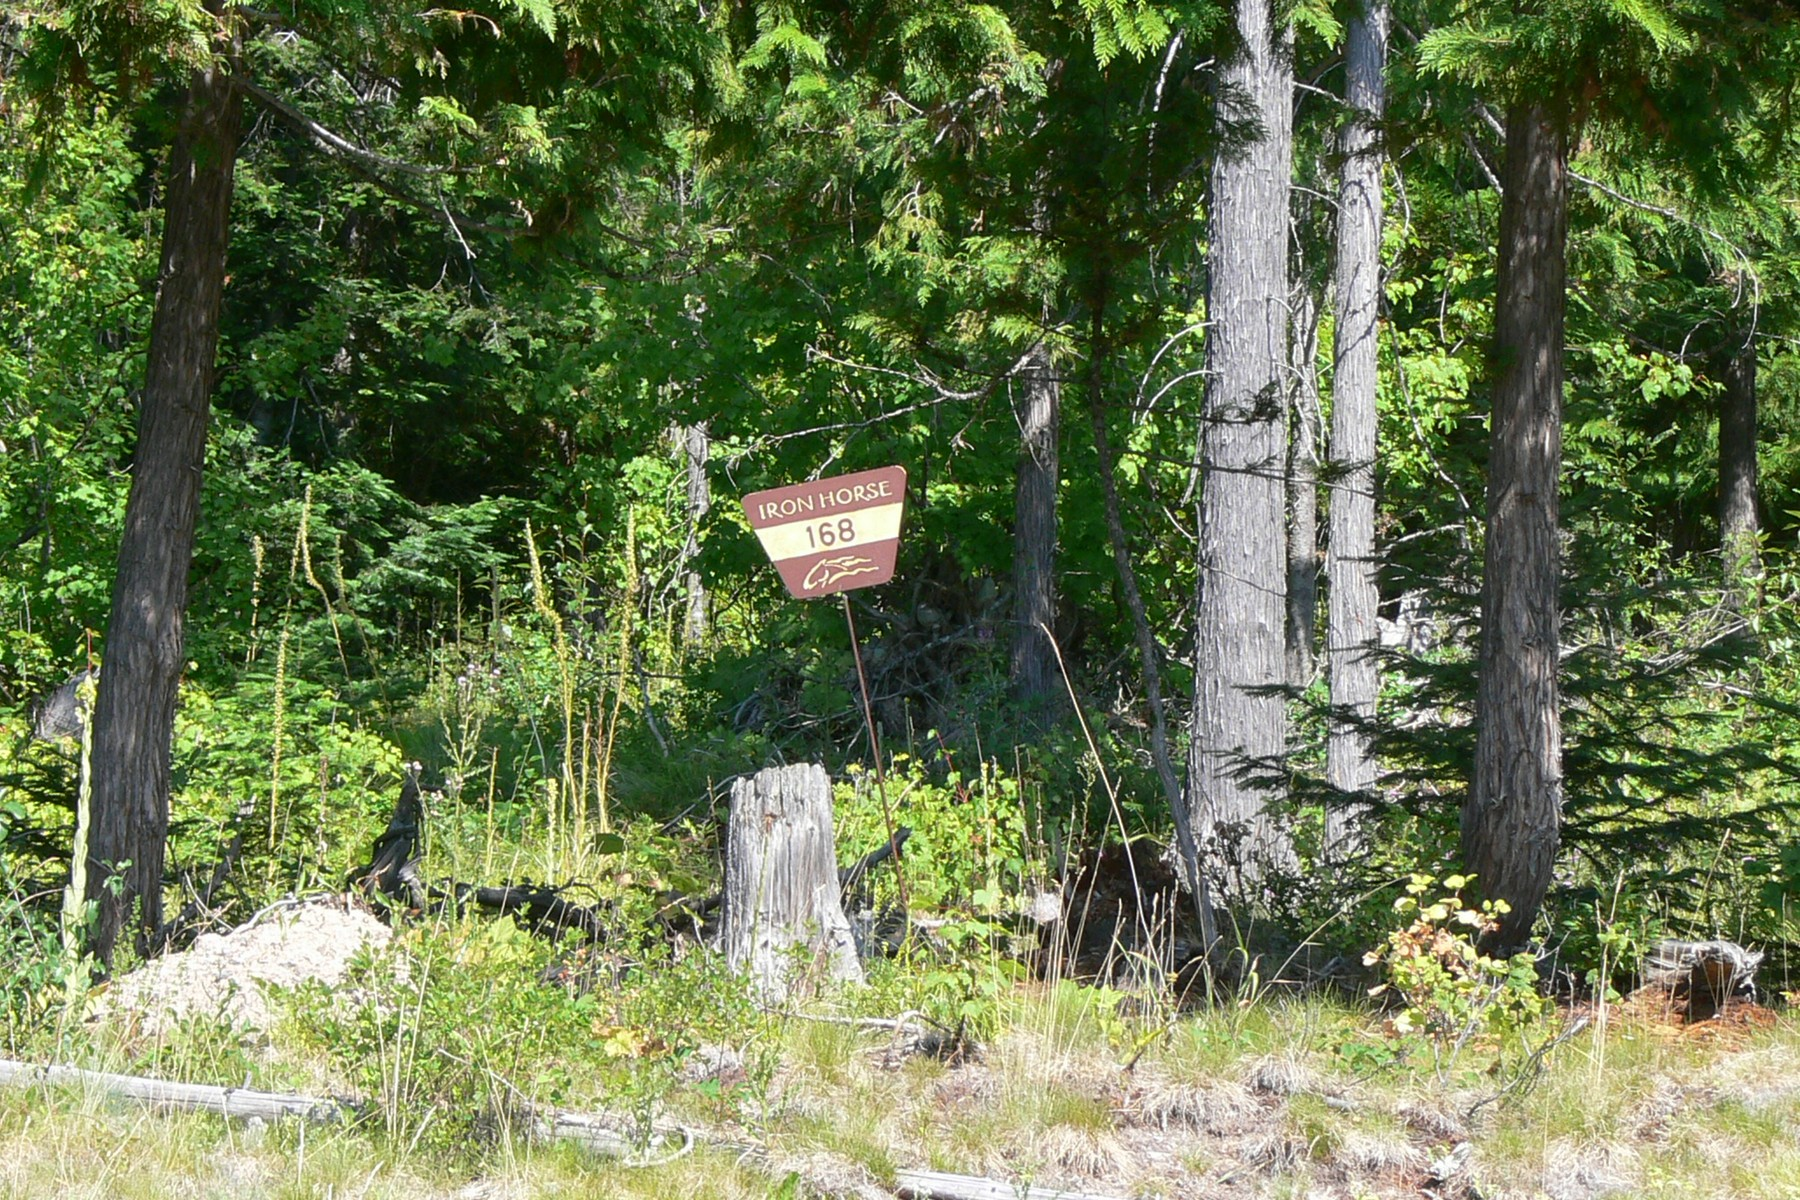 Land for Sale at 3024 Iron Horse Drive, Lot 168 3024 Iron Horse Dr Whitefish, Montana, 59937 United States